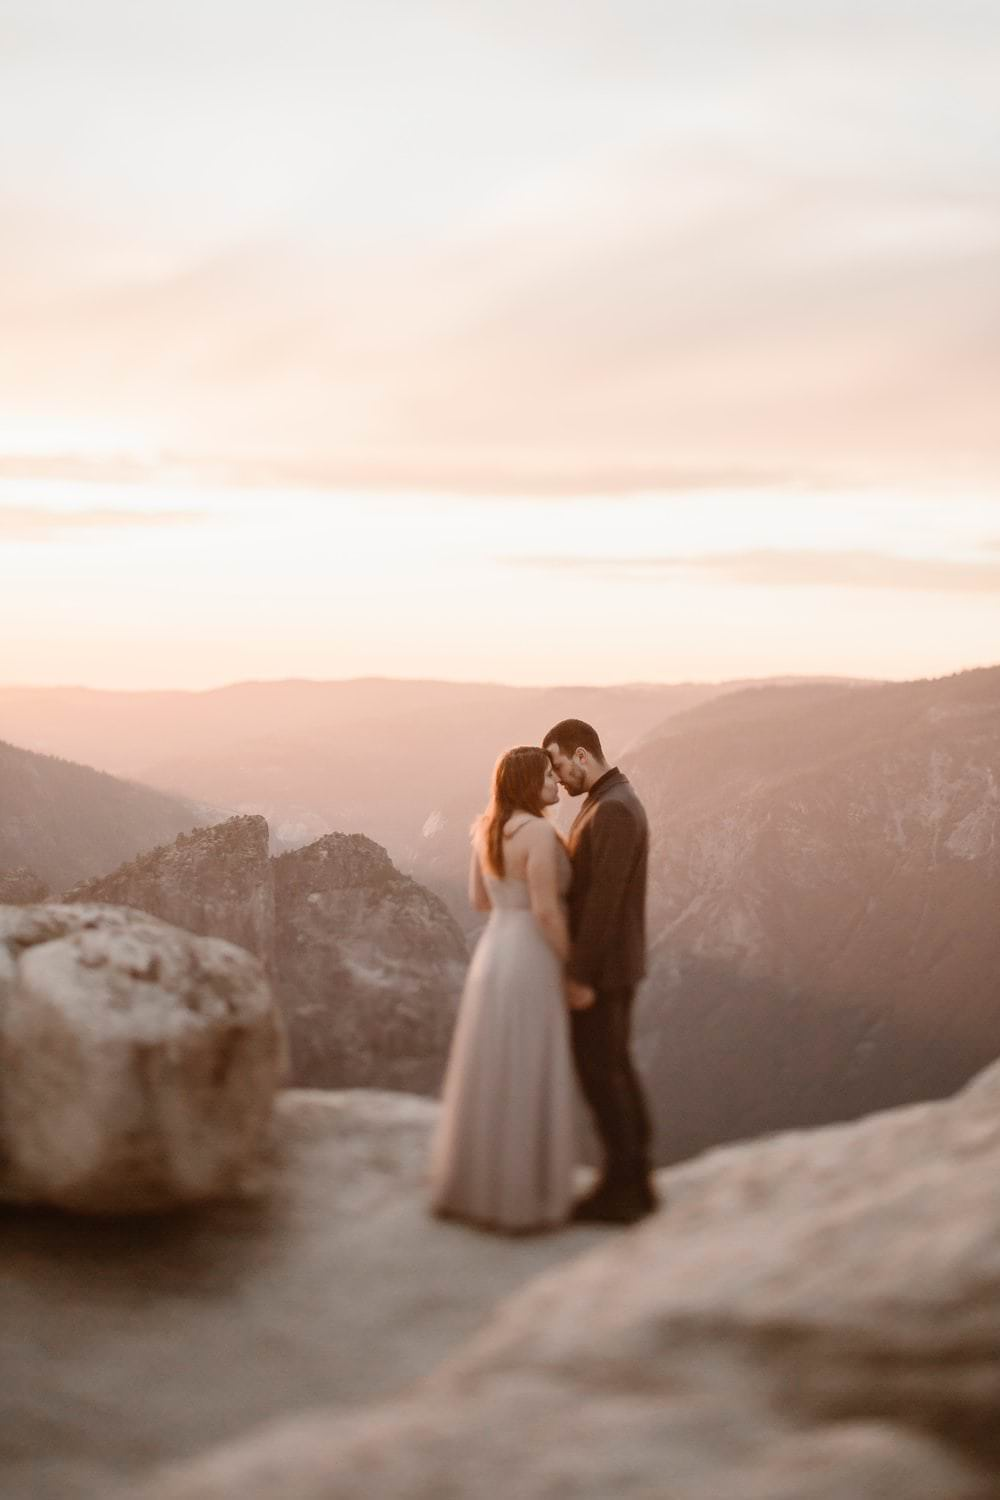 Yosemite National Park dreamy sunset at Taft Point. In the presence of sunset light Marie and her husband renewed vows at the most dreamiest places on Earth. The couples shared intimate moments while embracing each other, the adventure couple enjoyed an adventure hike among the dreamiest Colorado sunrise adventure hike. Photos captured by Justyna E Butler, Rocky Mountain Adventure Elopements and Intimate Weddings Photographer, Colorado Mountain Wedding Photographer, Destination Adventure Wedding Photographer